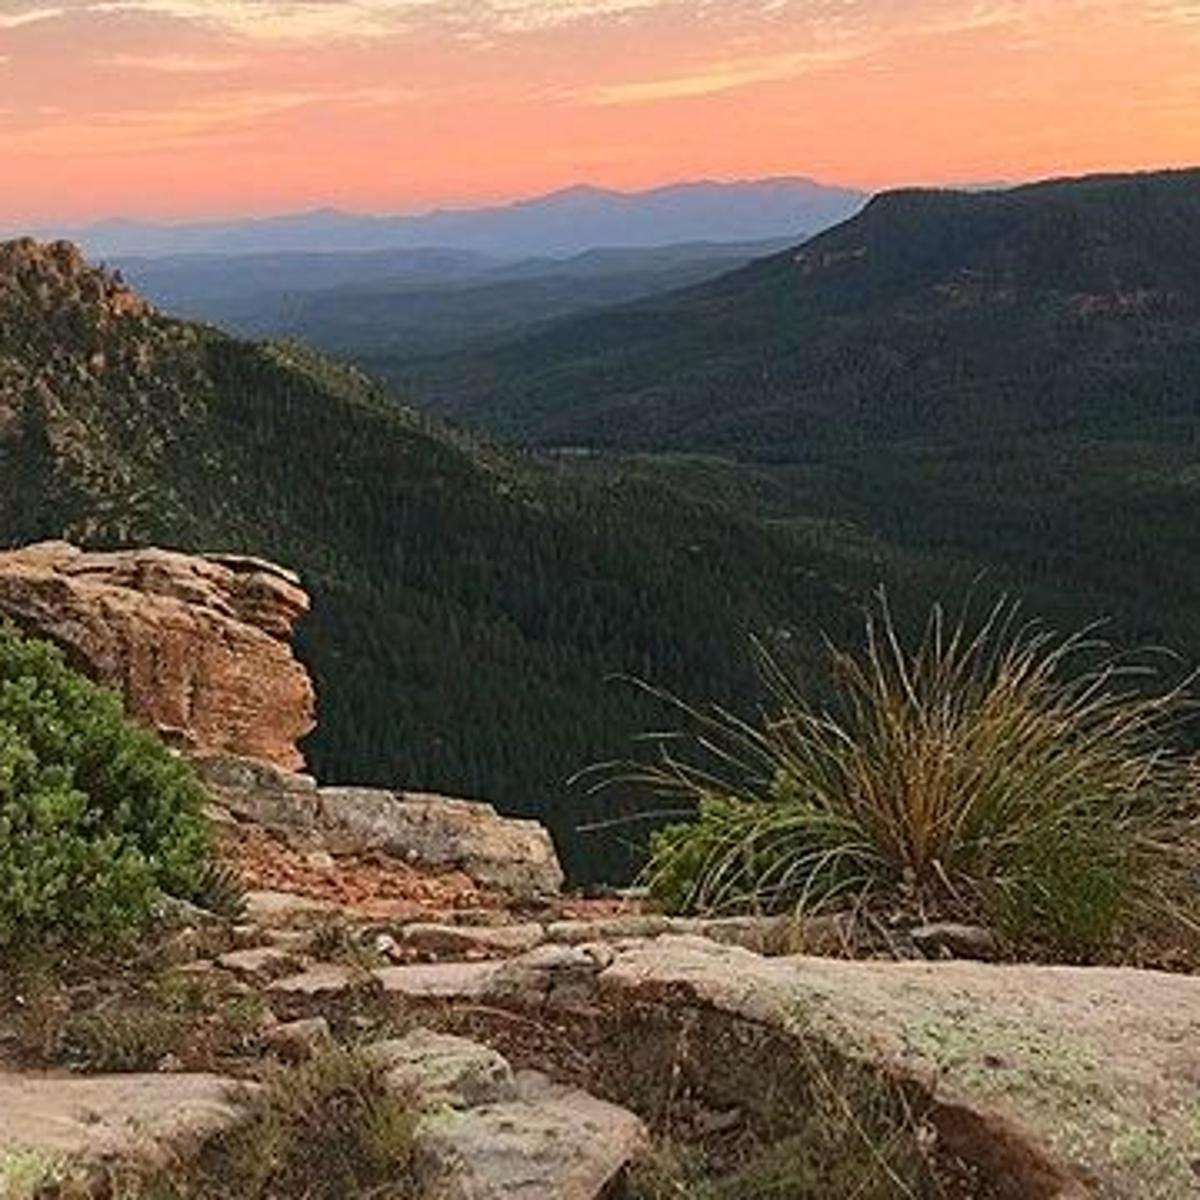 What's in a name: Mogollon Rim | What's in a name | azfamily com